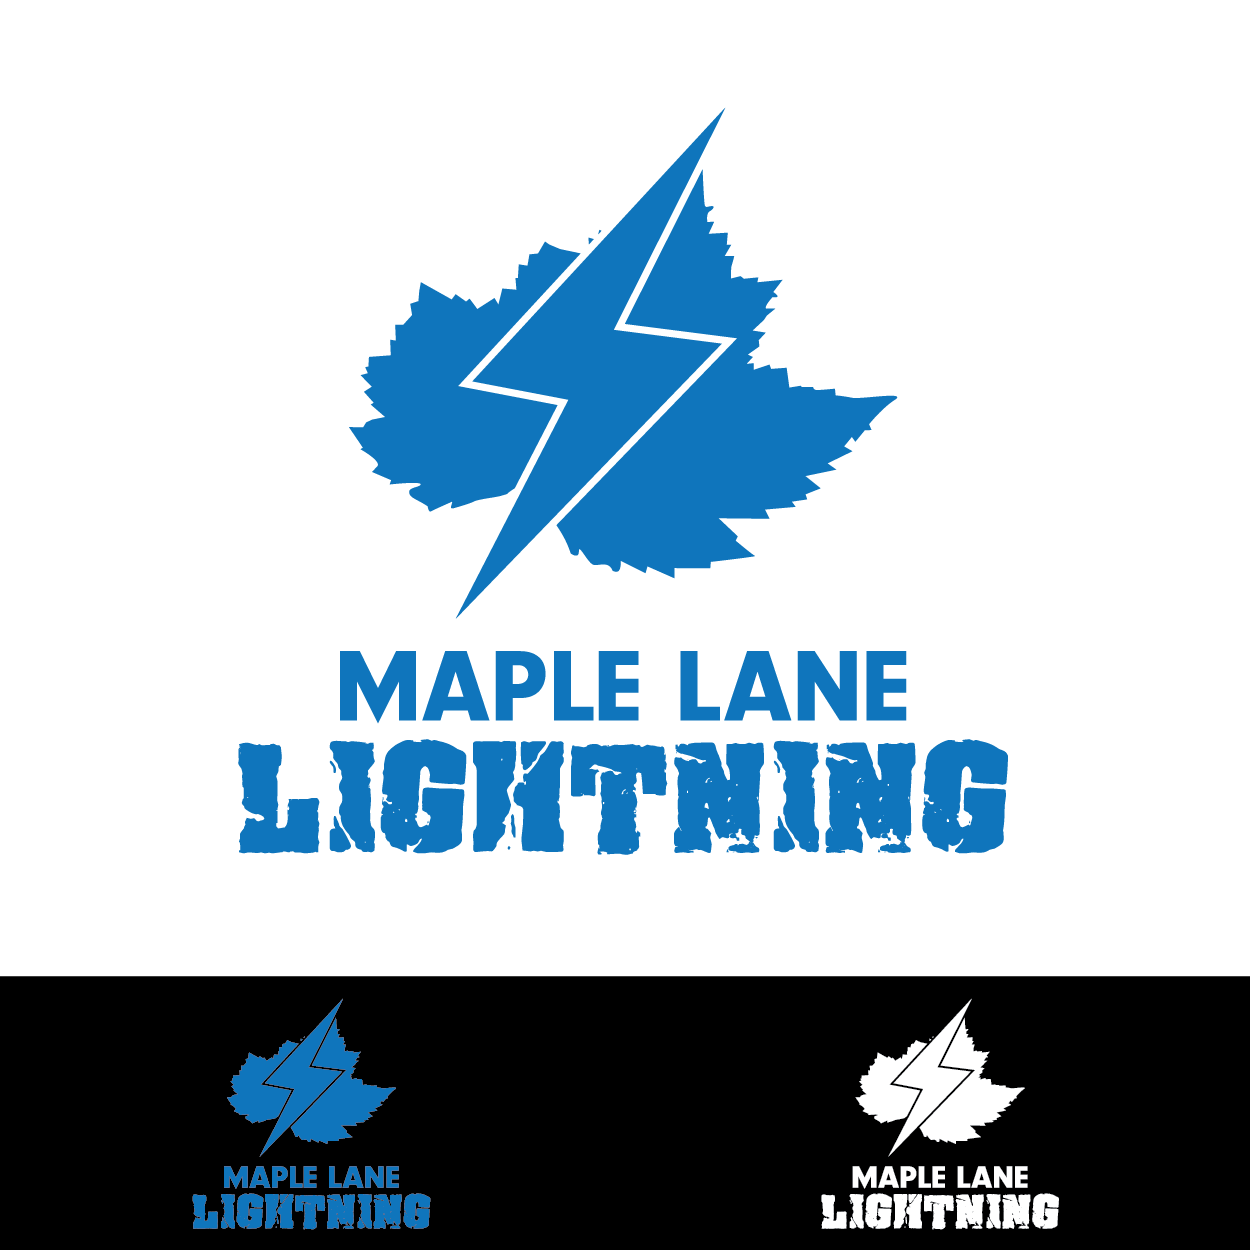 Logo Design by ojsgraphix - Entry No. 93 in the Logo Design Contest Maple Lane Logo Design.